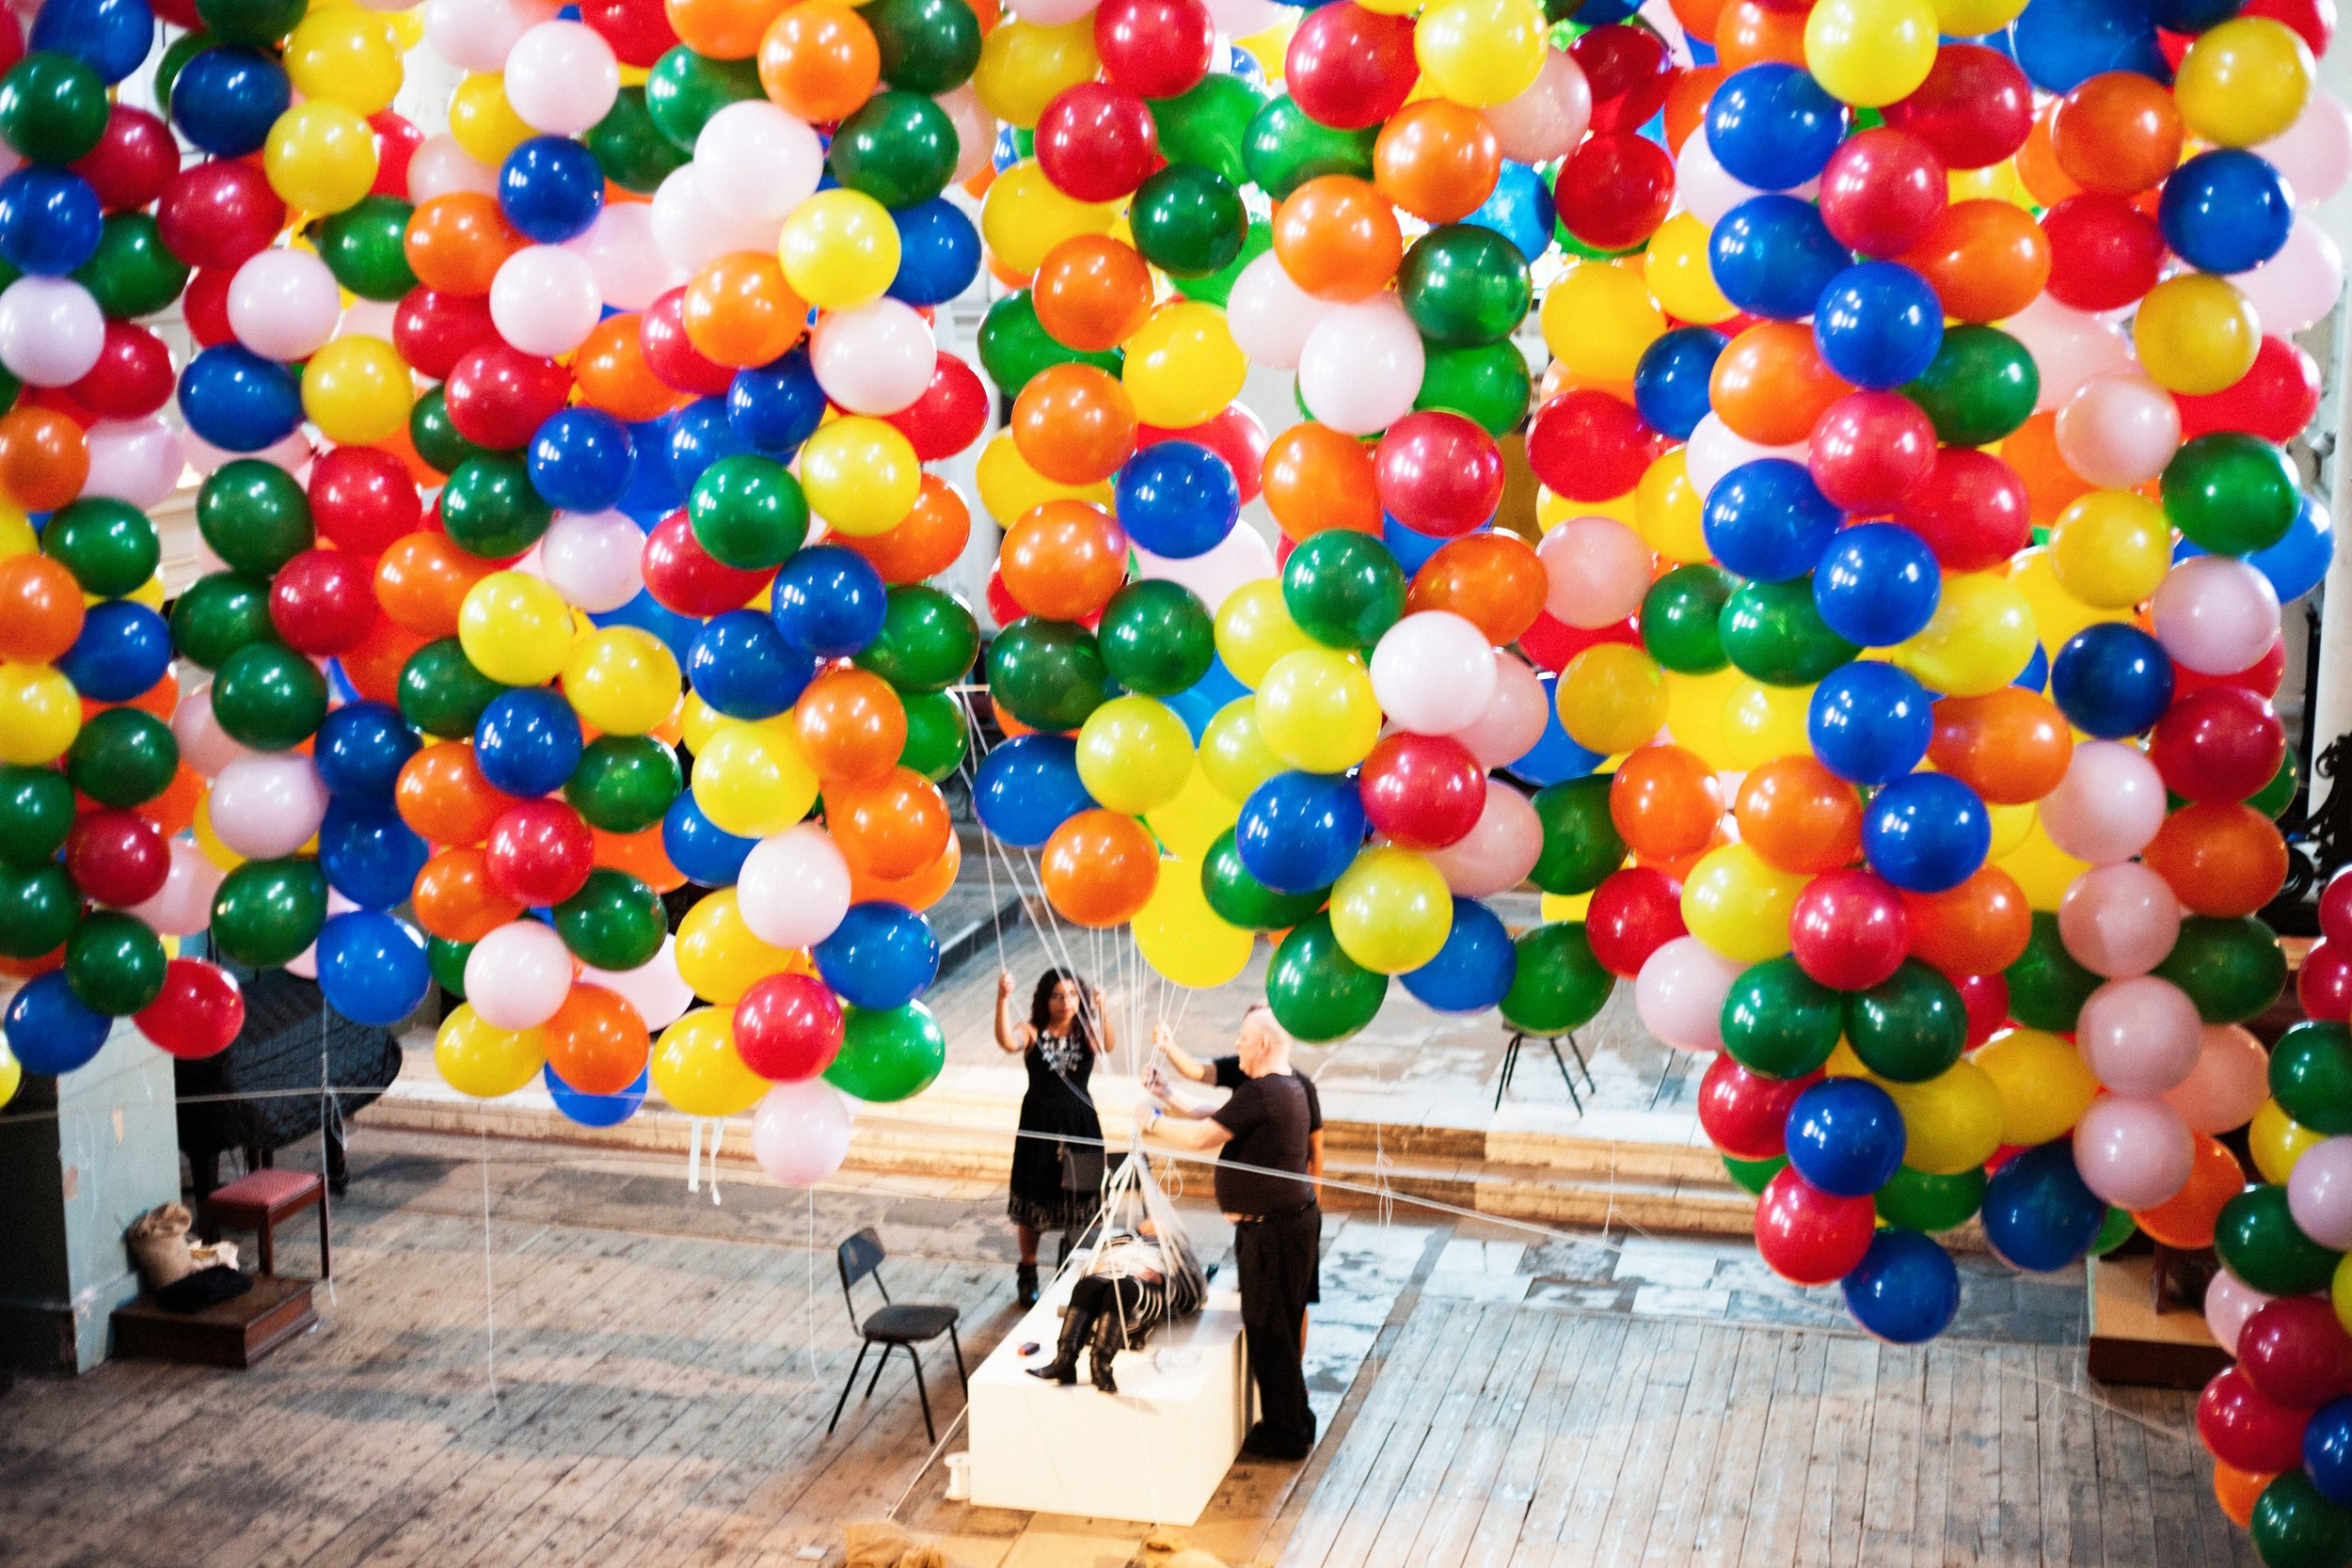 Noemi Lakmaier's 'Cherophobia' at Southbank Centre's Unlimited Festival. Photo by Grace Gelder for Unlimited